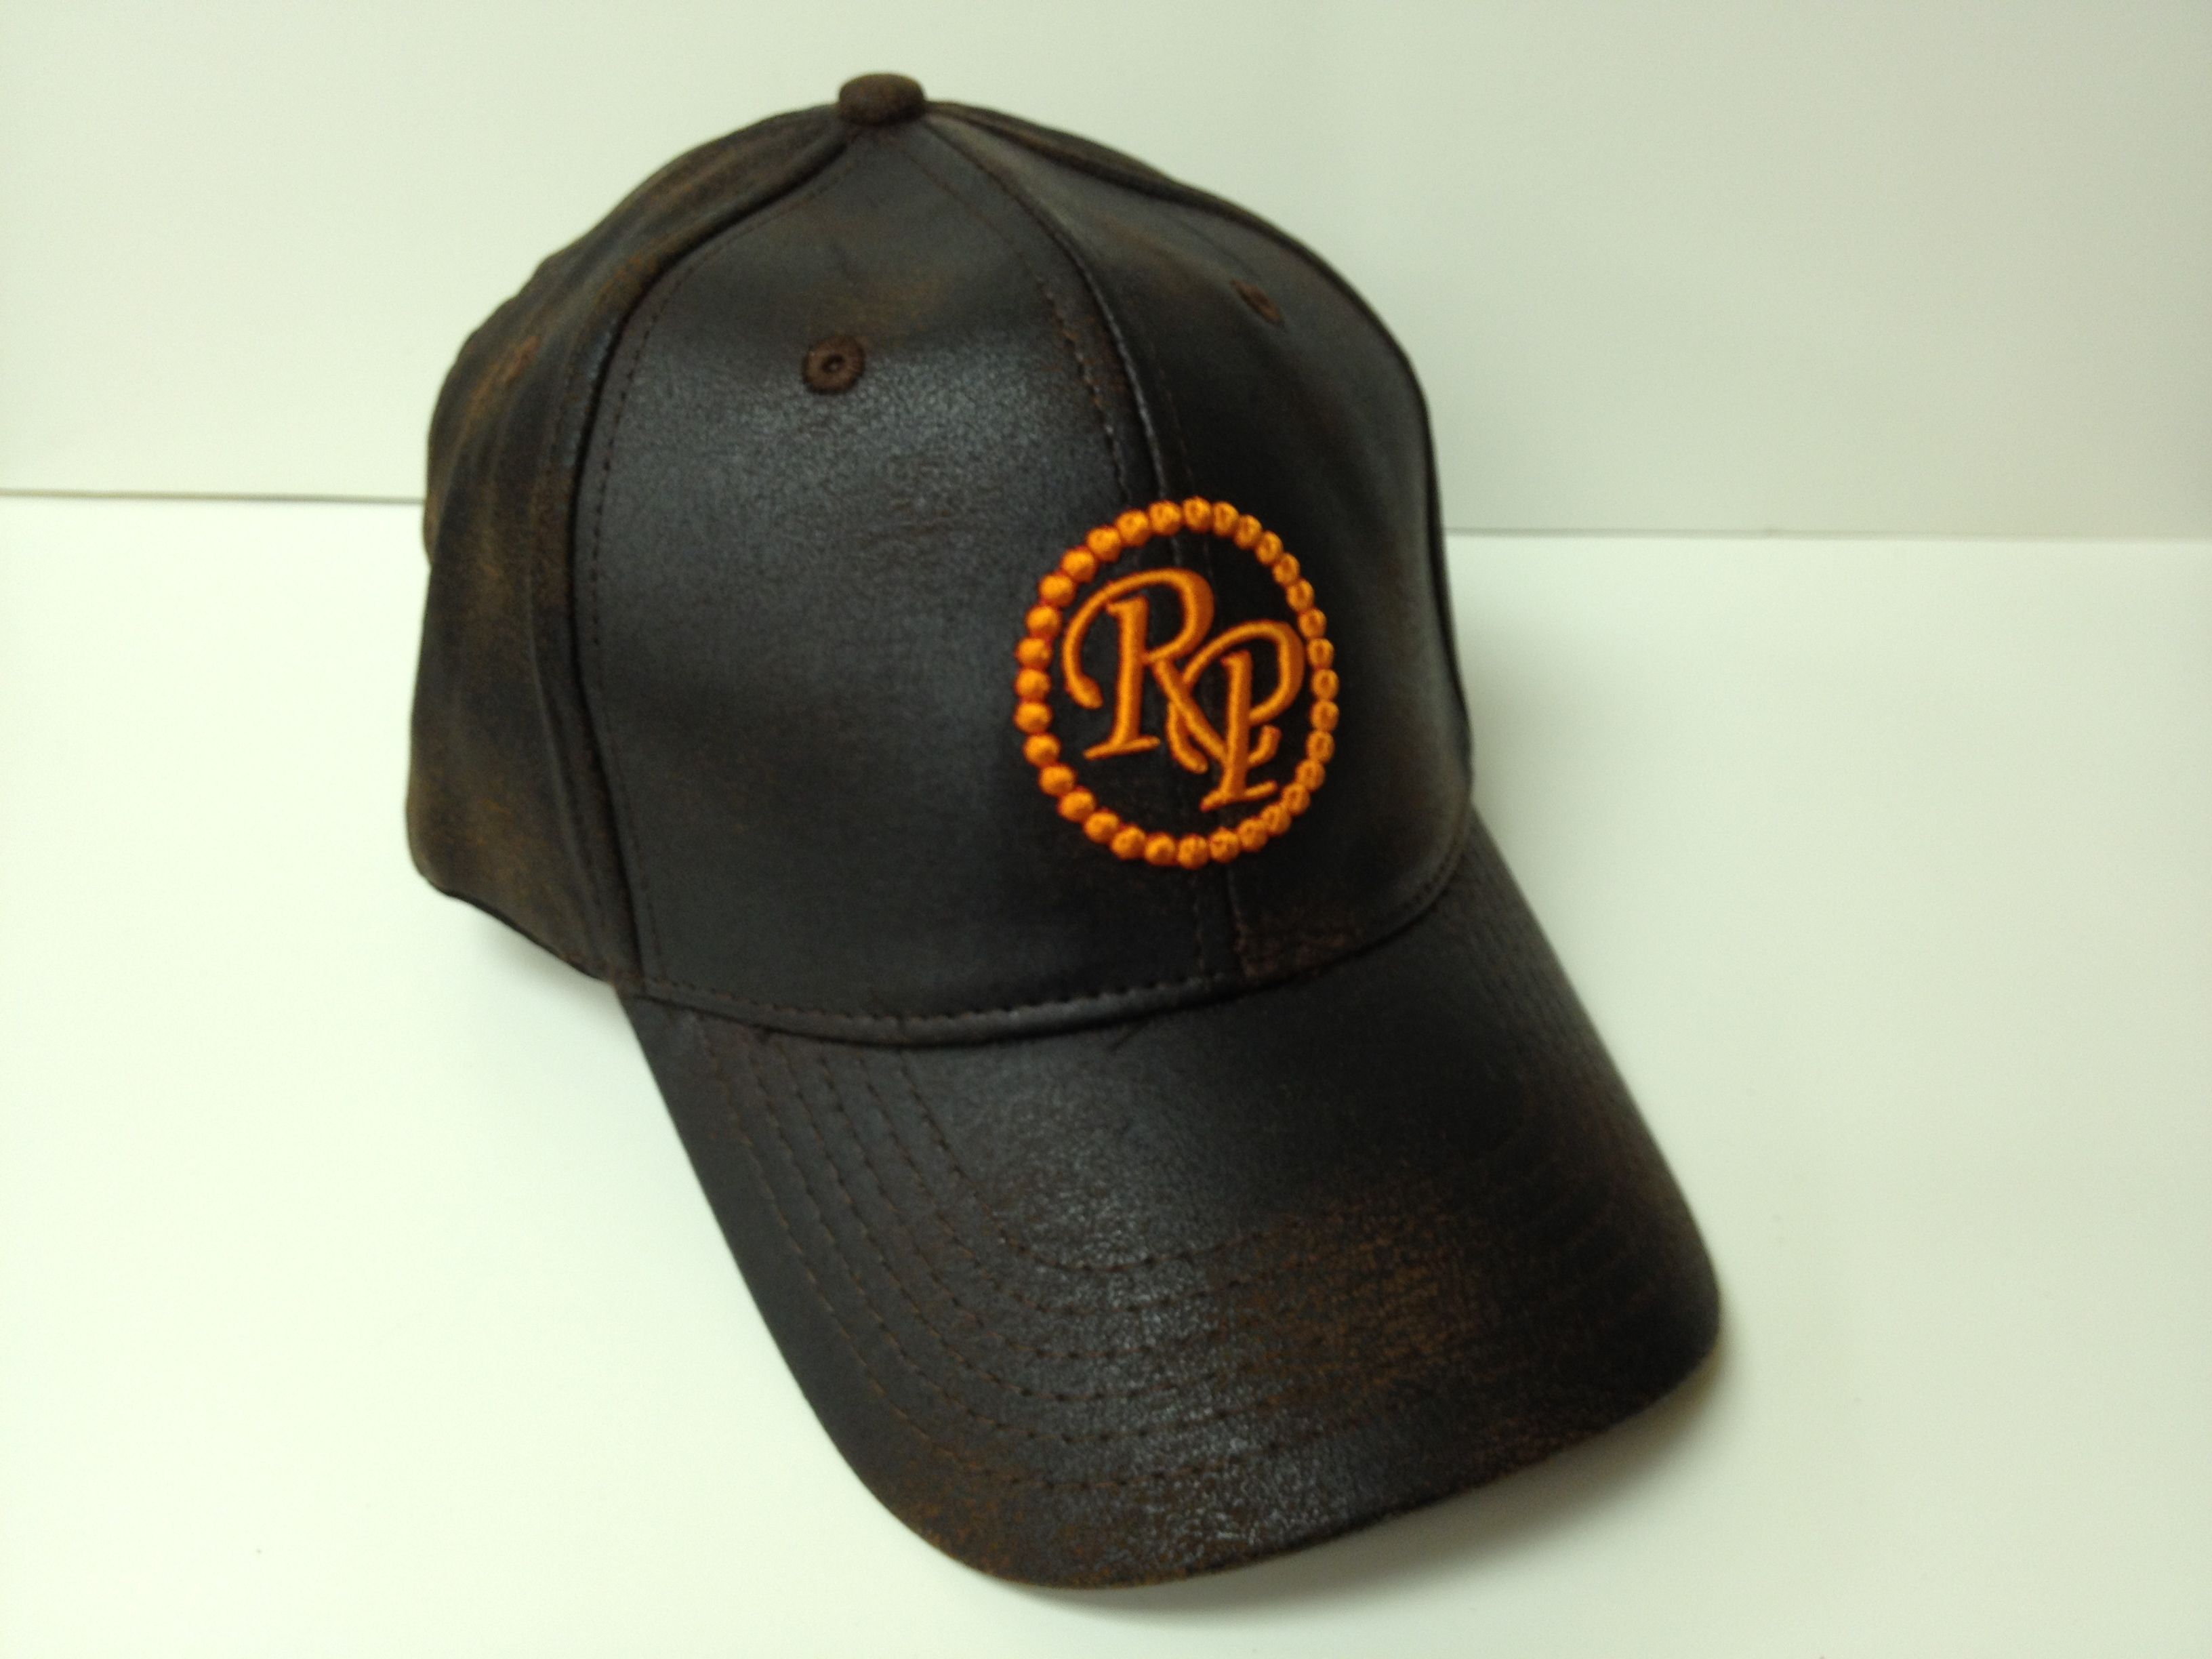 Rocky Patel 50th Anniversary Distressed Tobacco Leaf Style Leather Hat